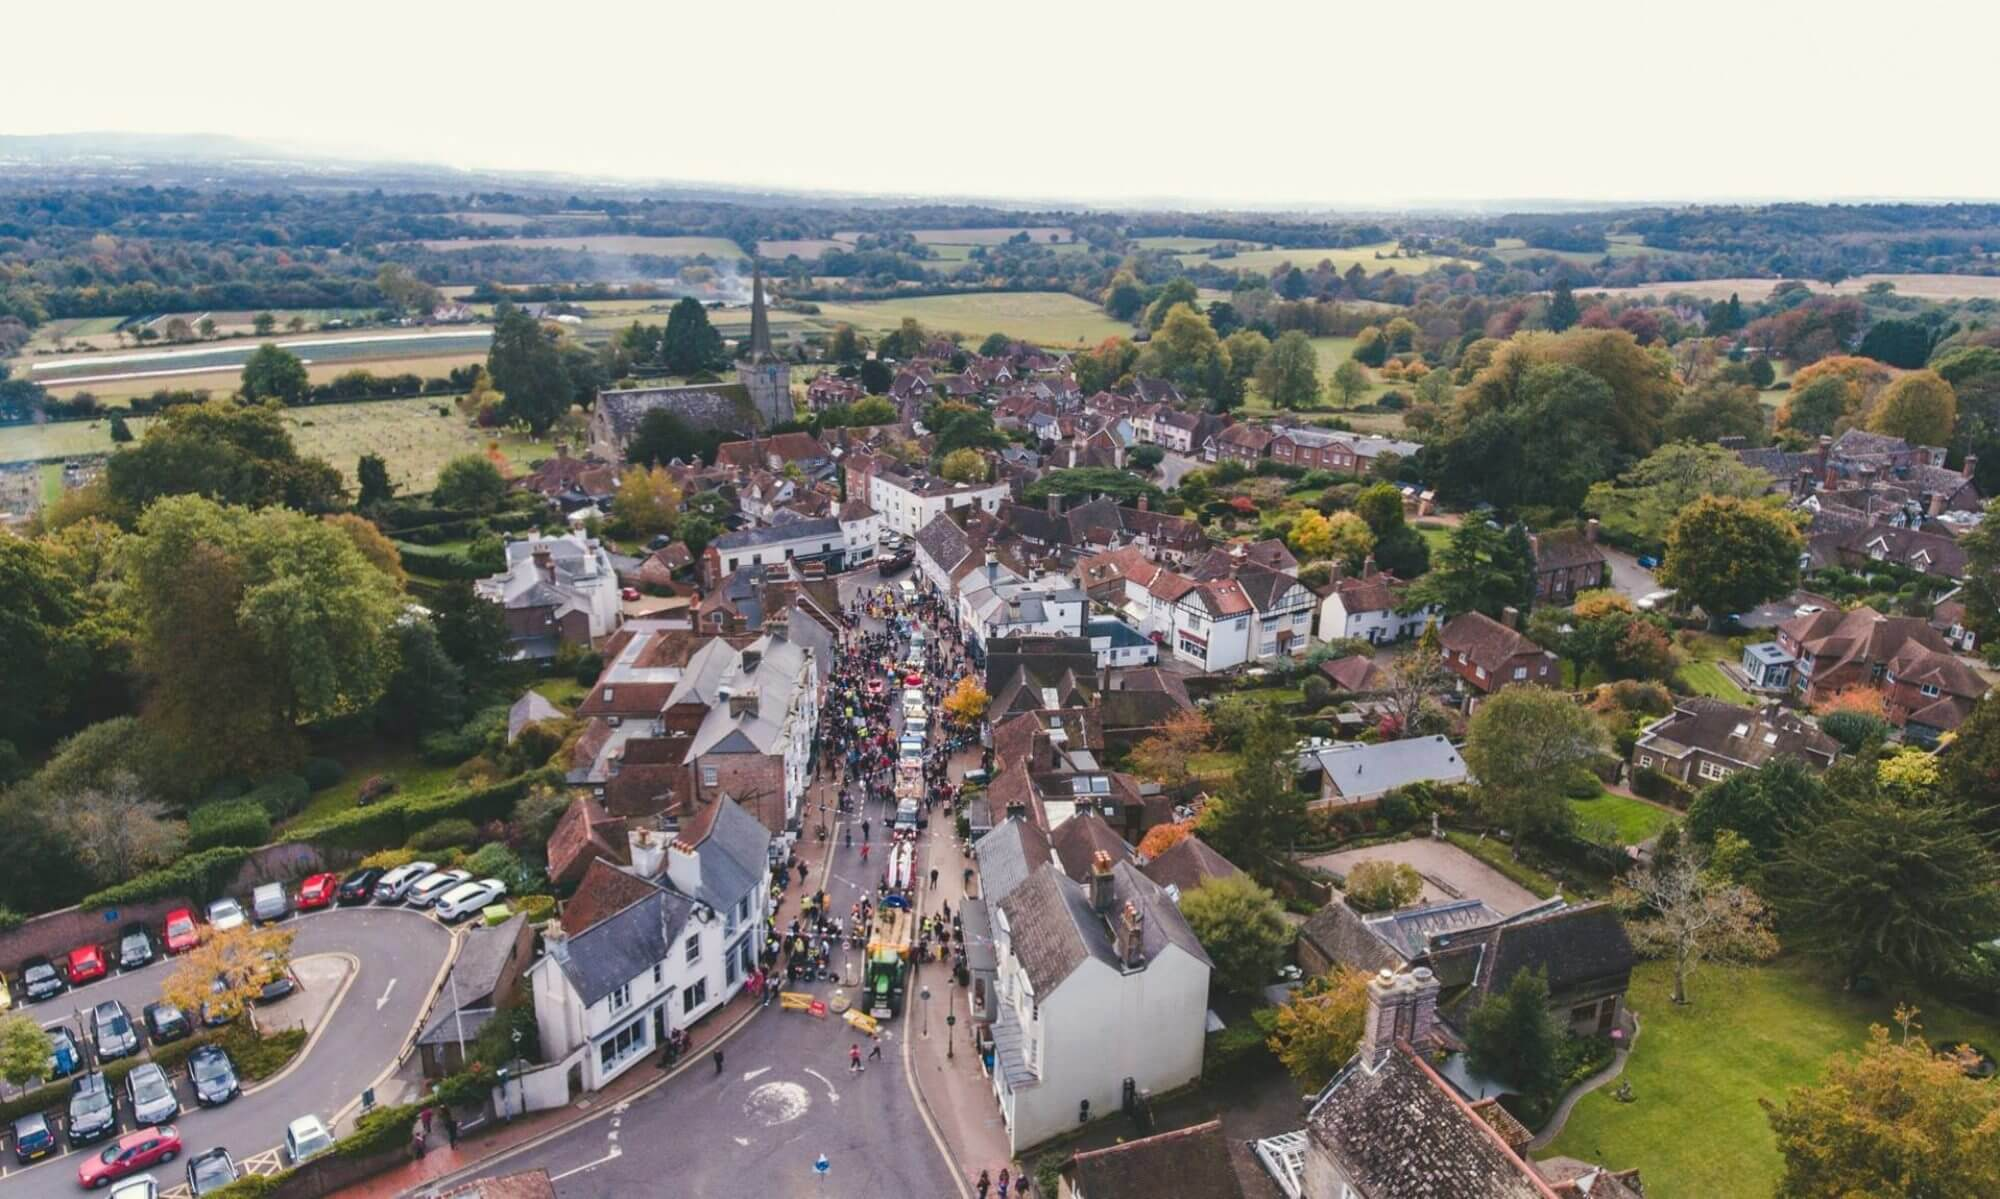 The Independent State of Cuckfield